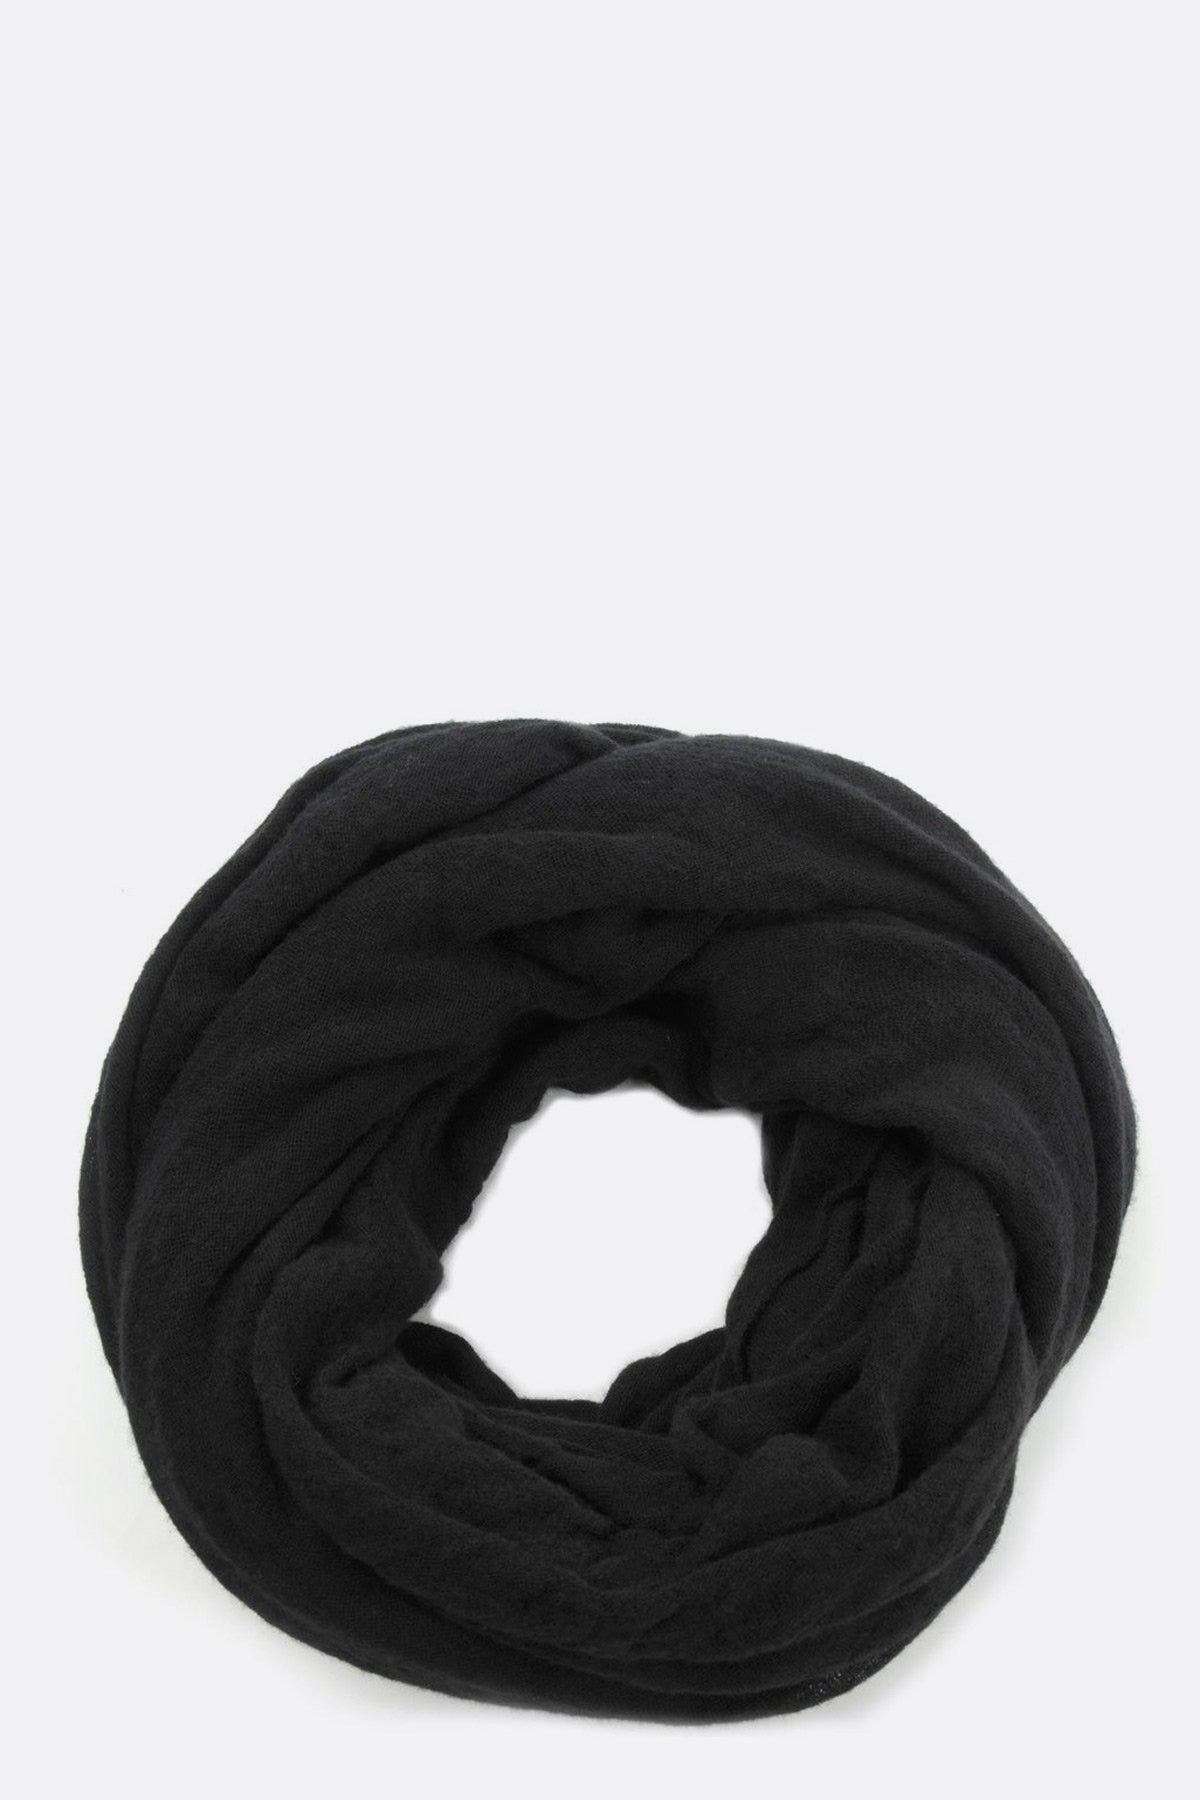 Thick Black Cashmere Tube Scarf by Botto Giuseppe